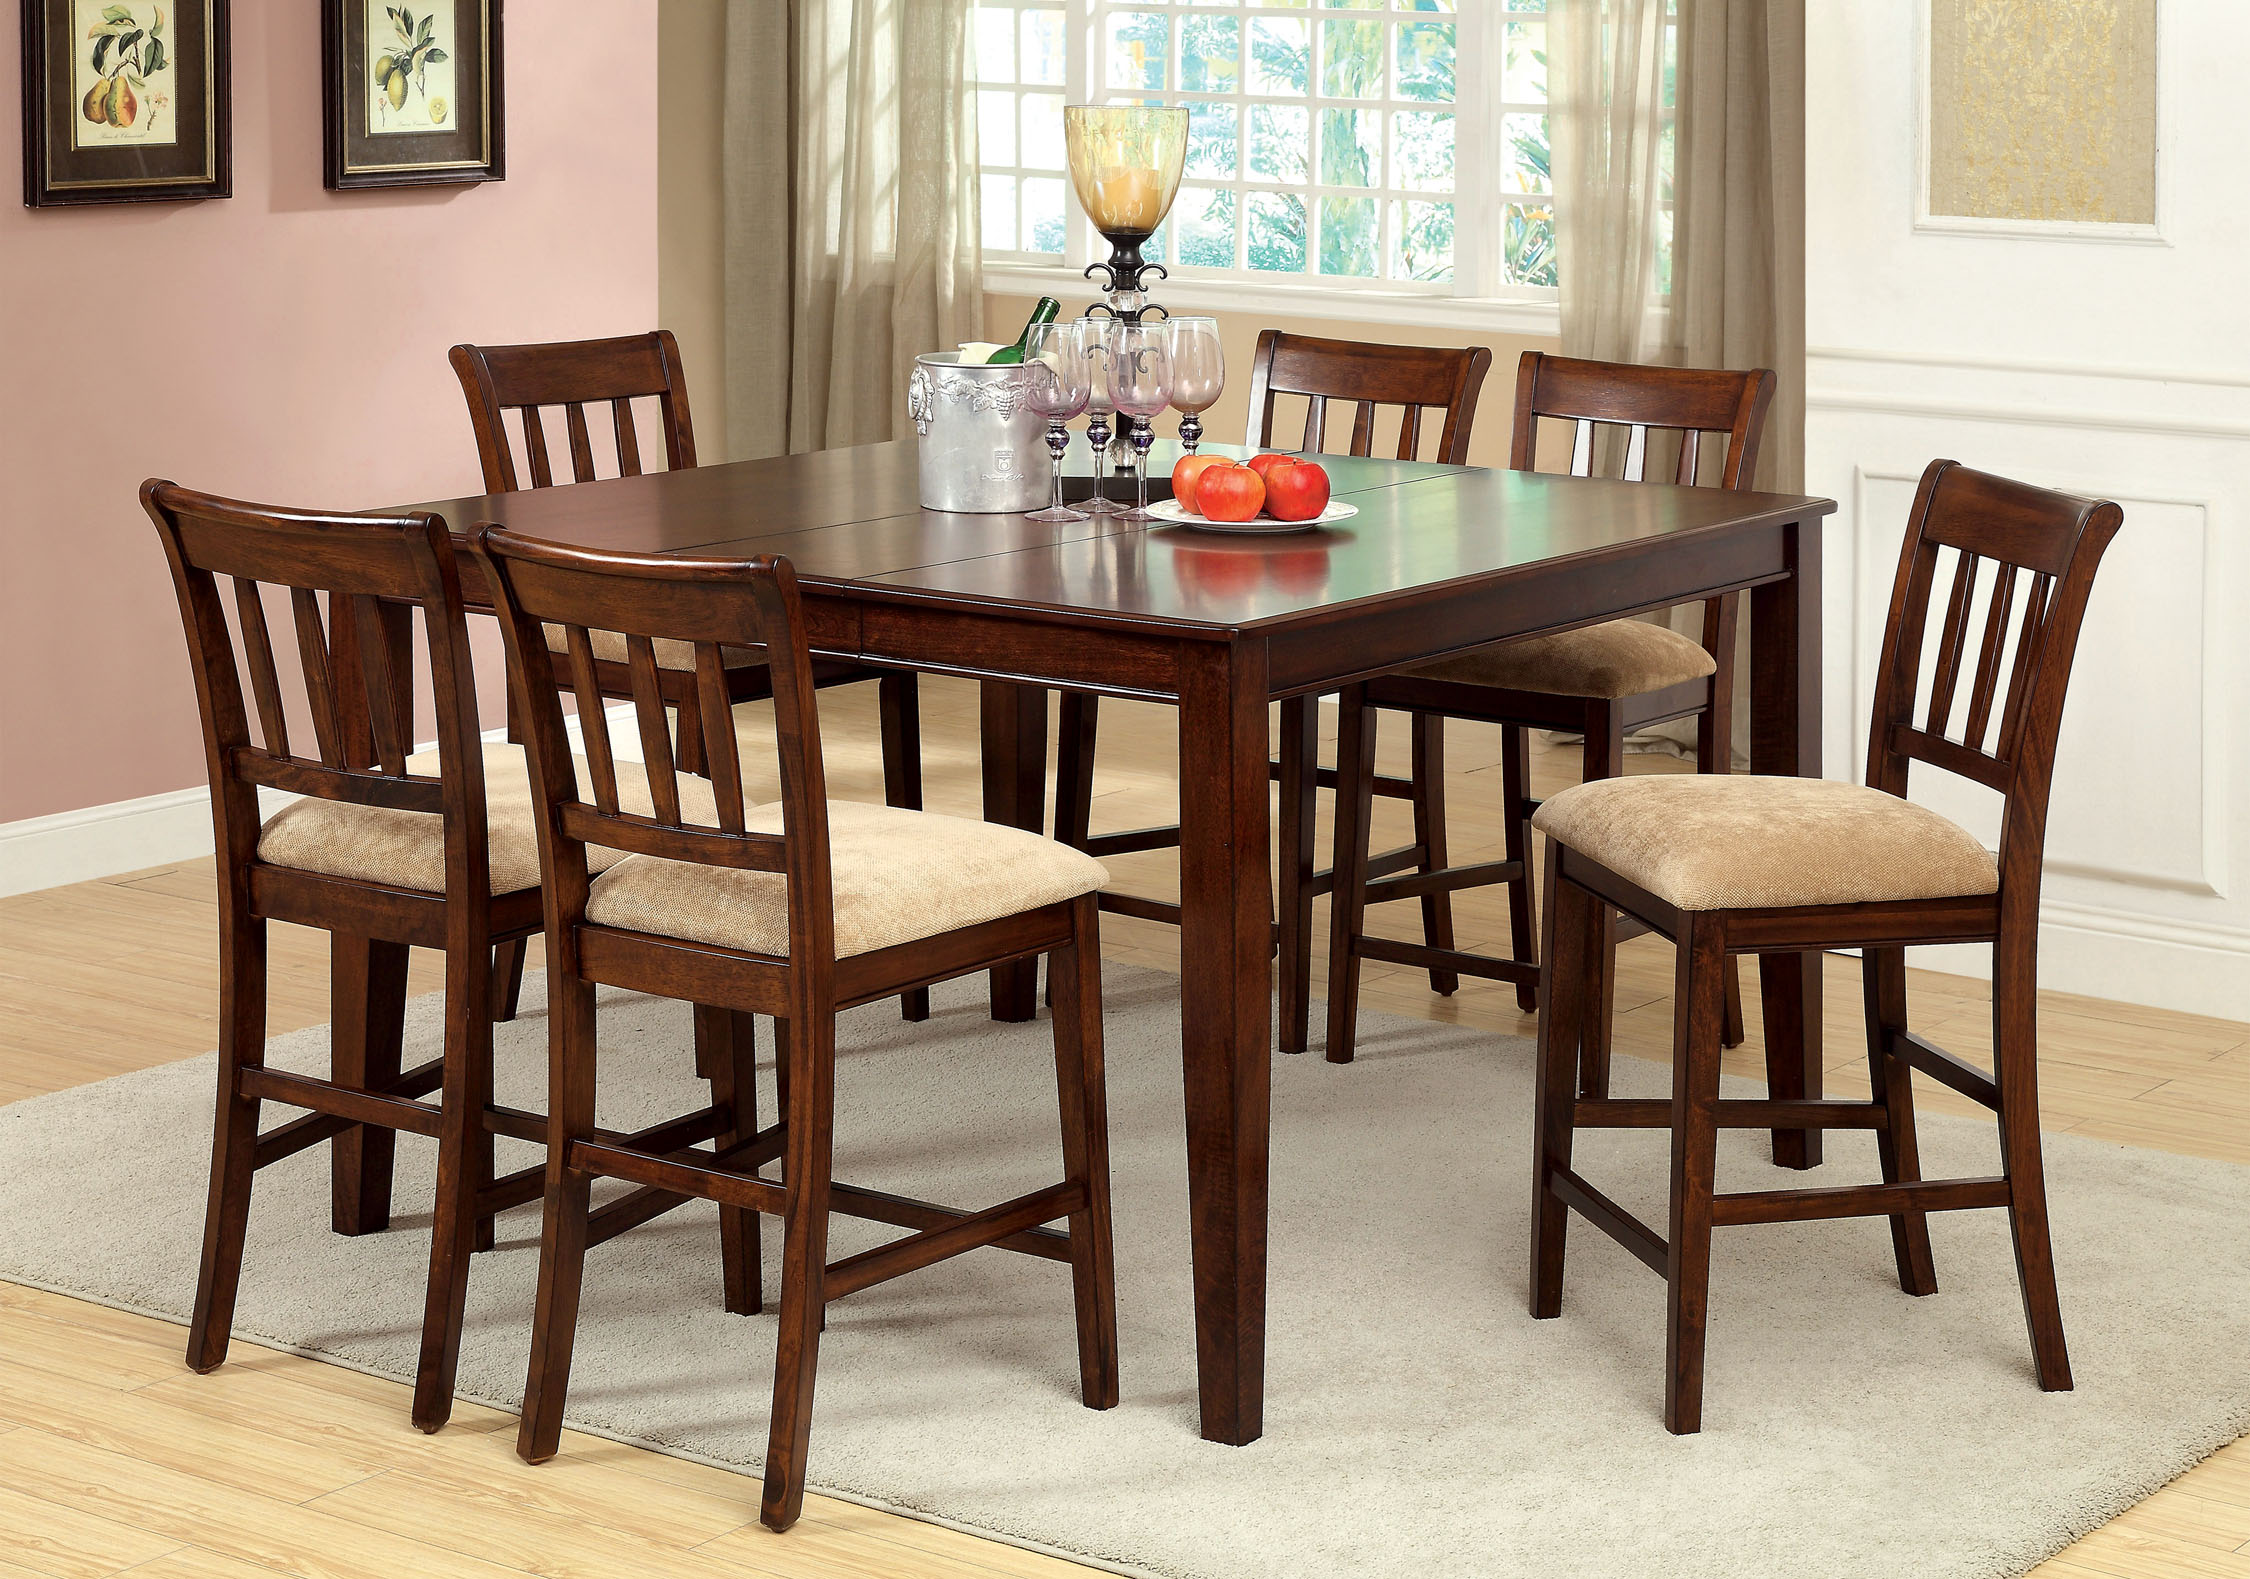 Furniture of America Cookes 7-Piece Counter Height Dining Set